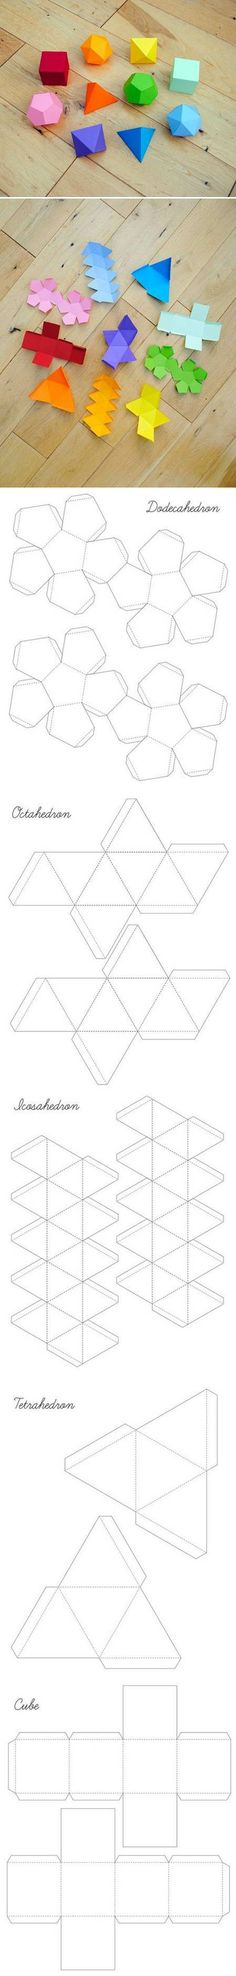 DIY-Geometrical-Box-Templates